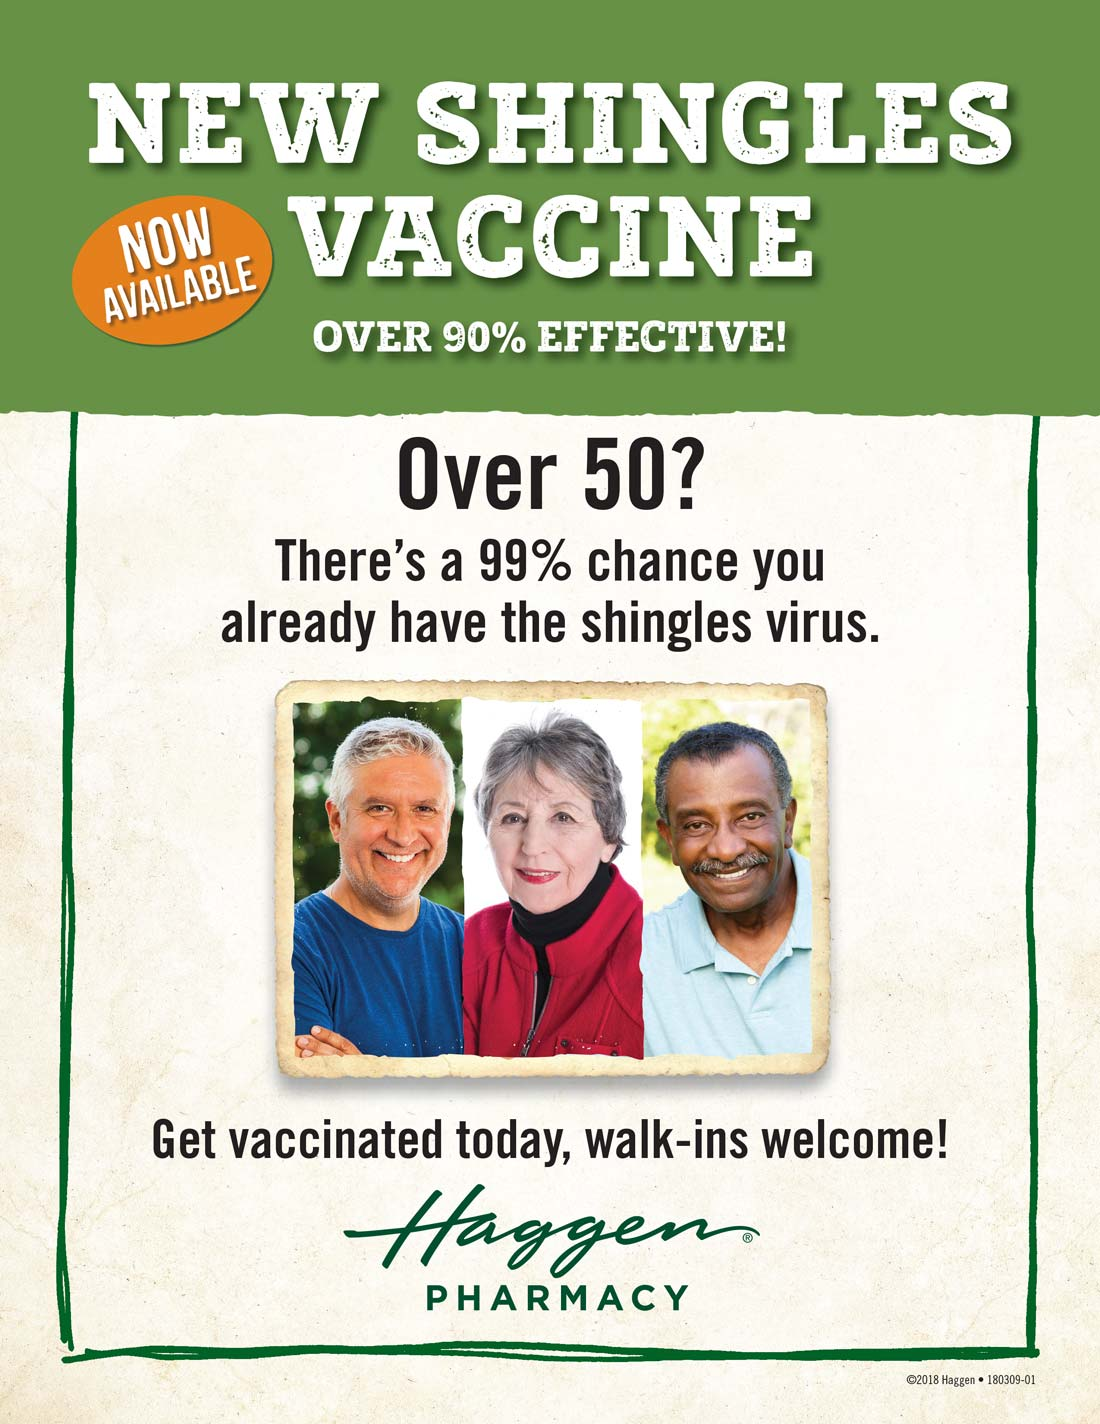 New Shingles Vaccine Now Available, Over 90% Effective. See your Pharmacy for details.